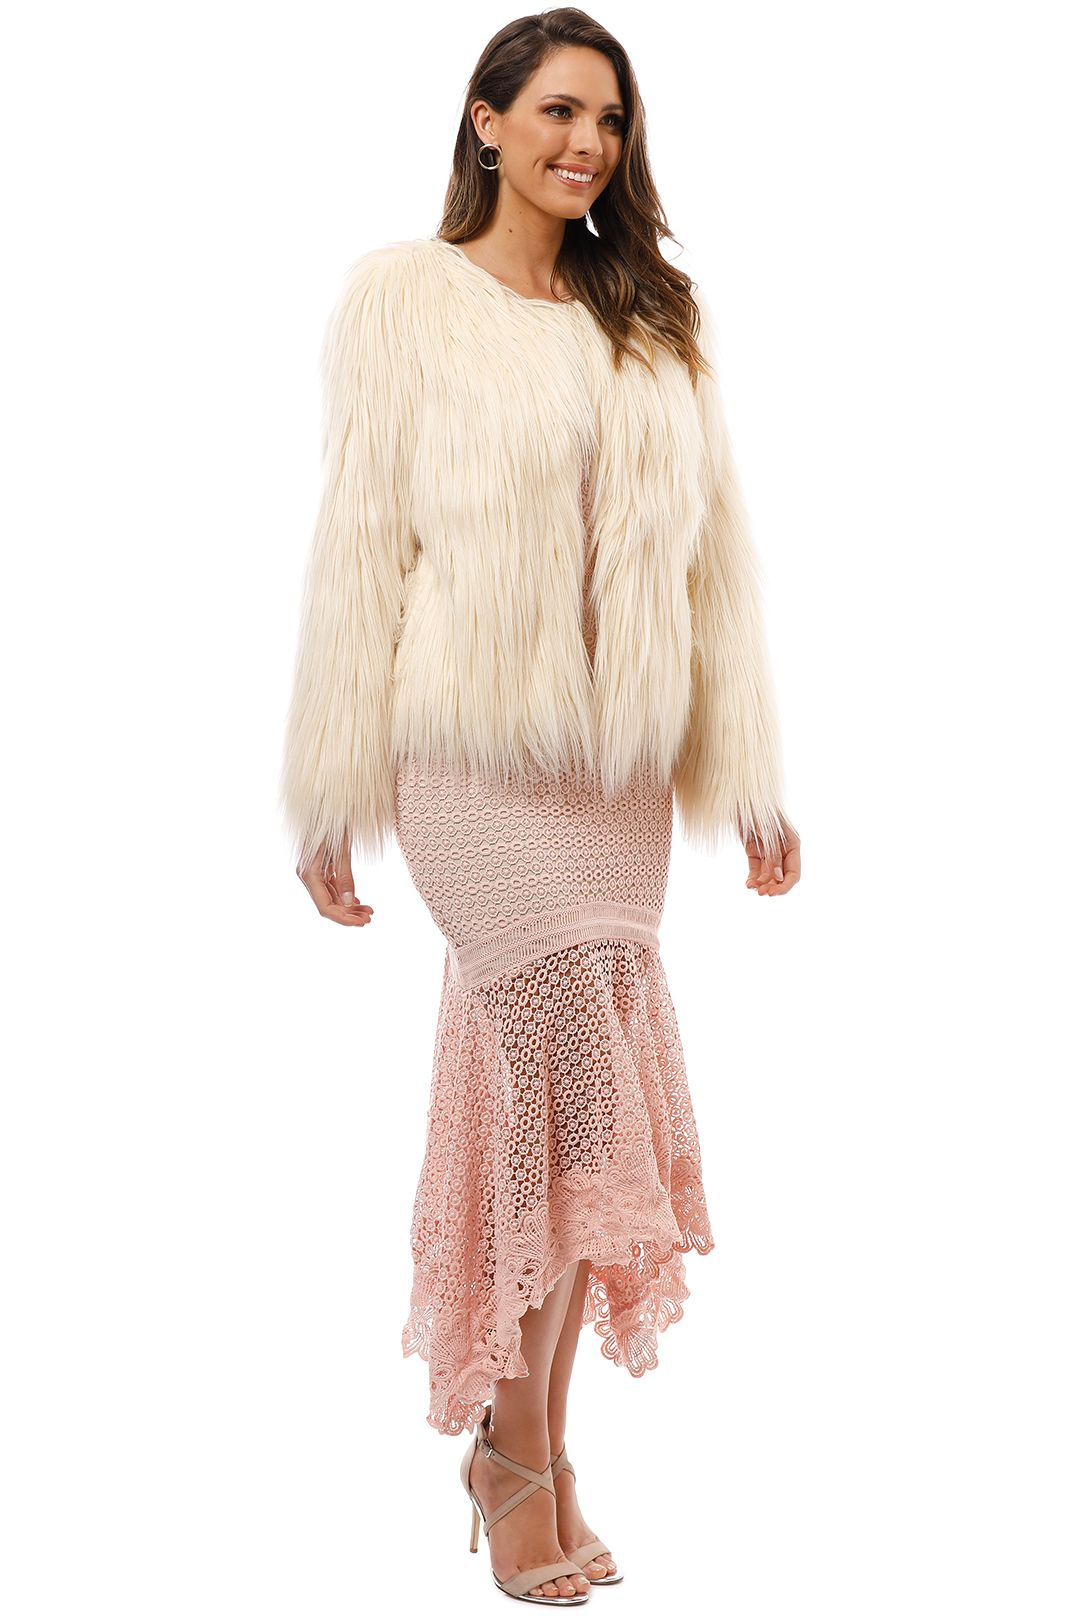 Unreal Fur - Unreal Dream Jacket - Ivory - Side